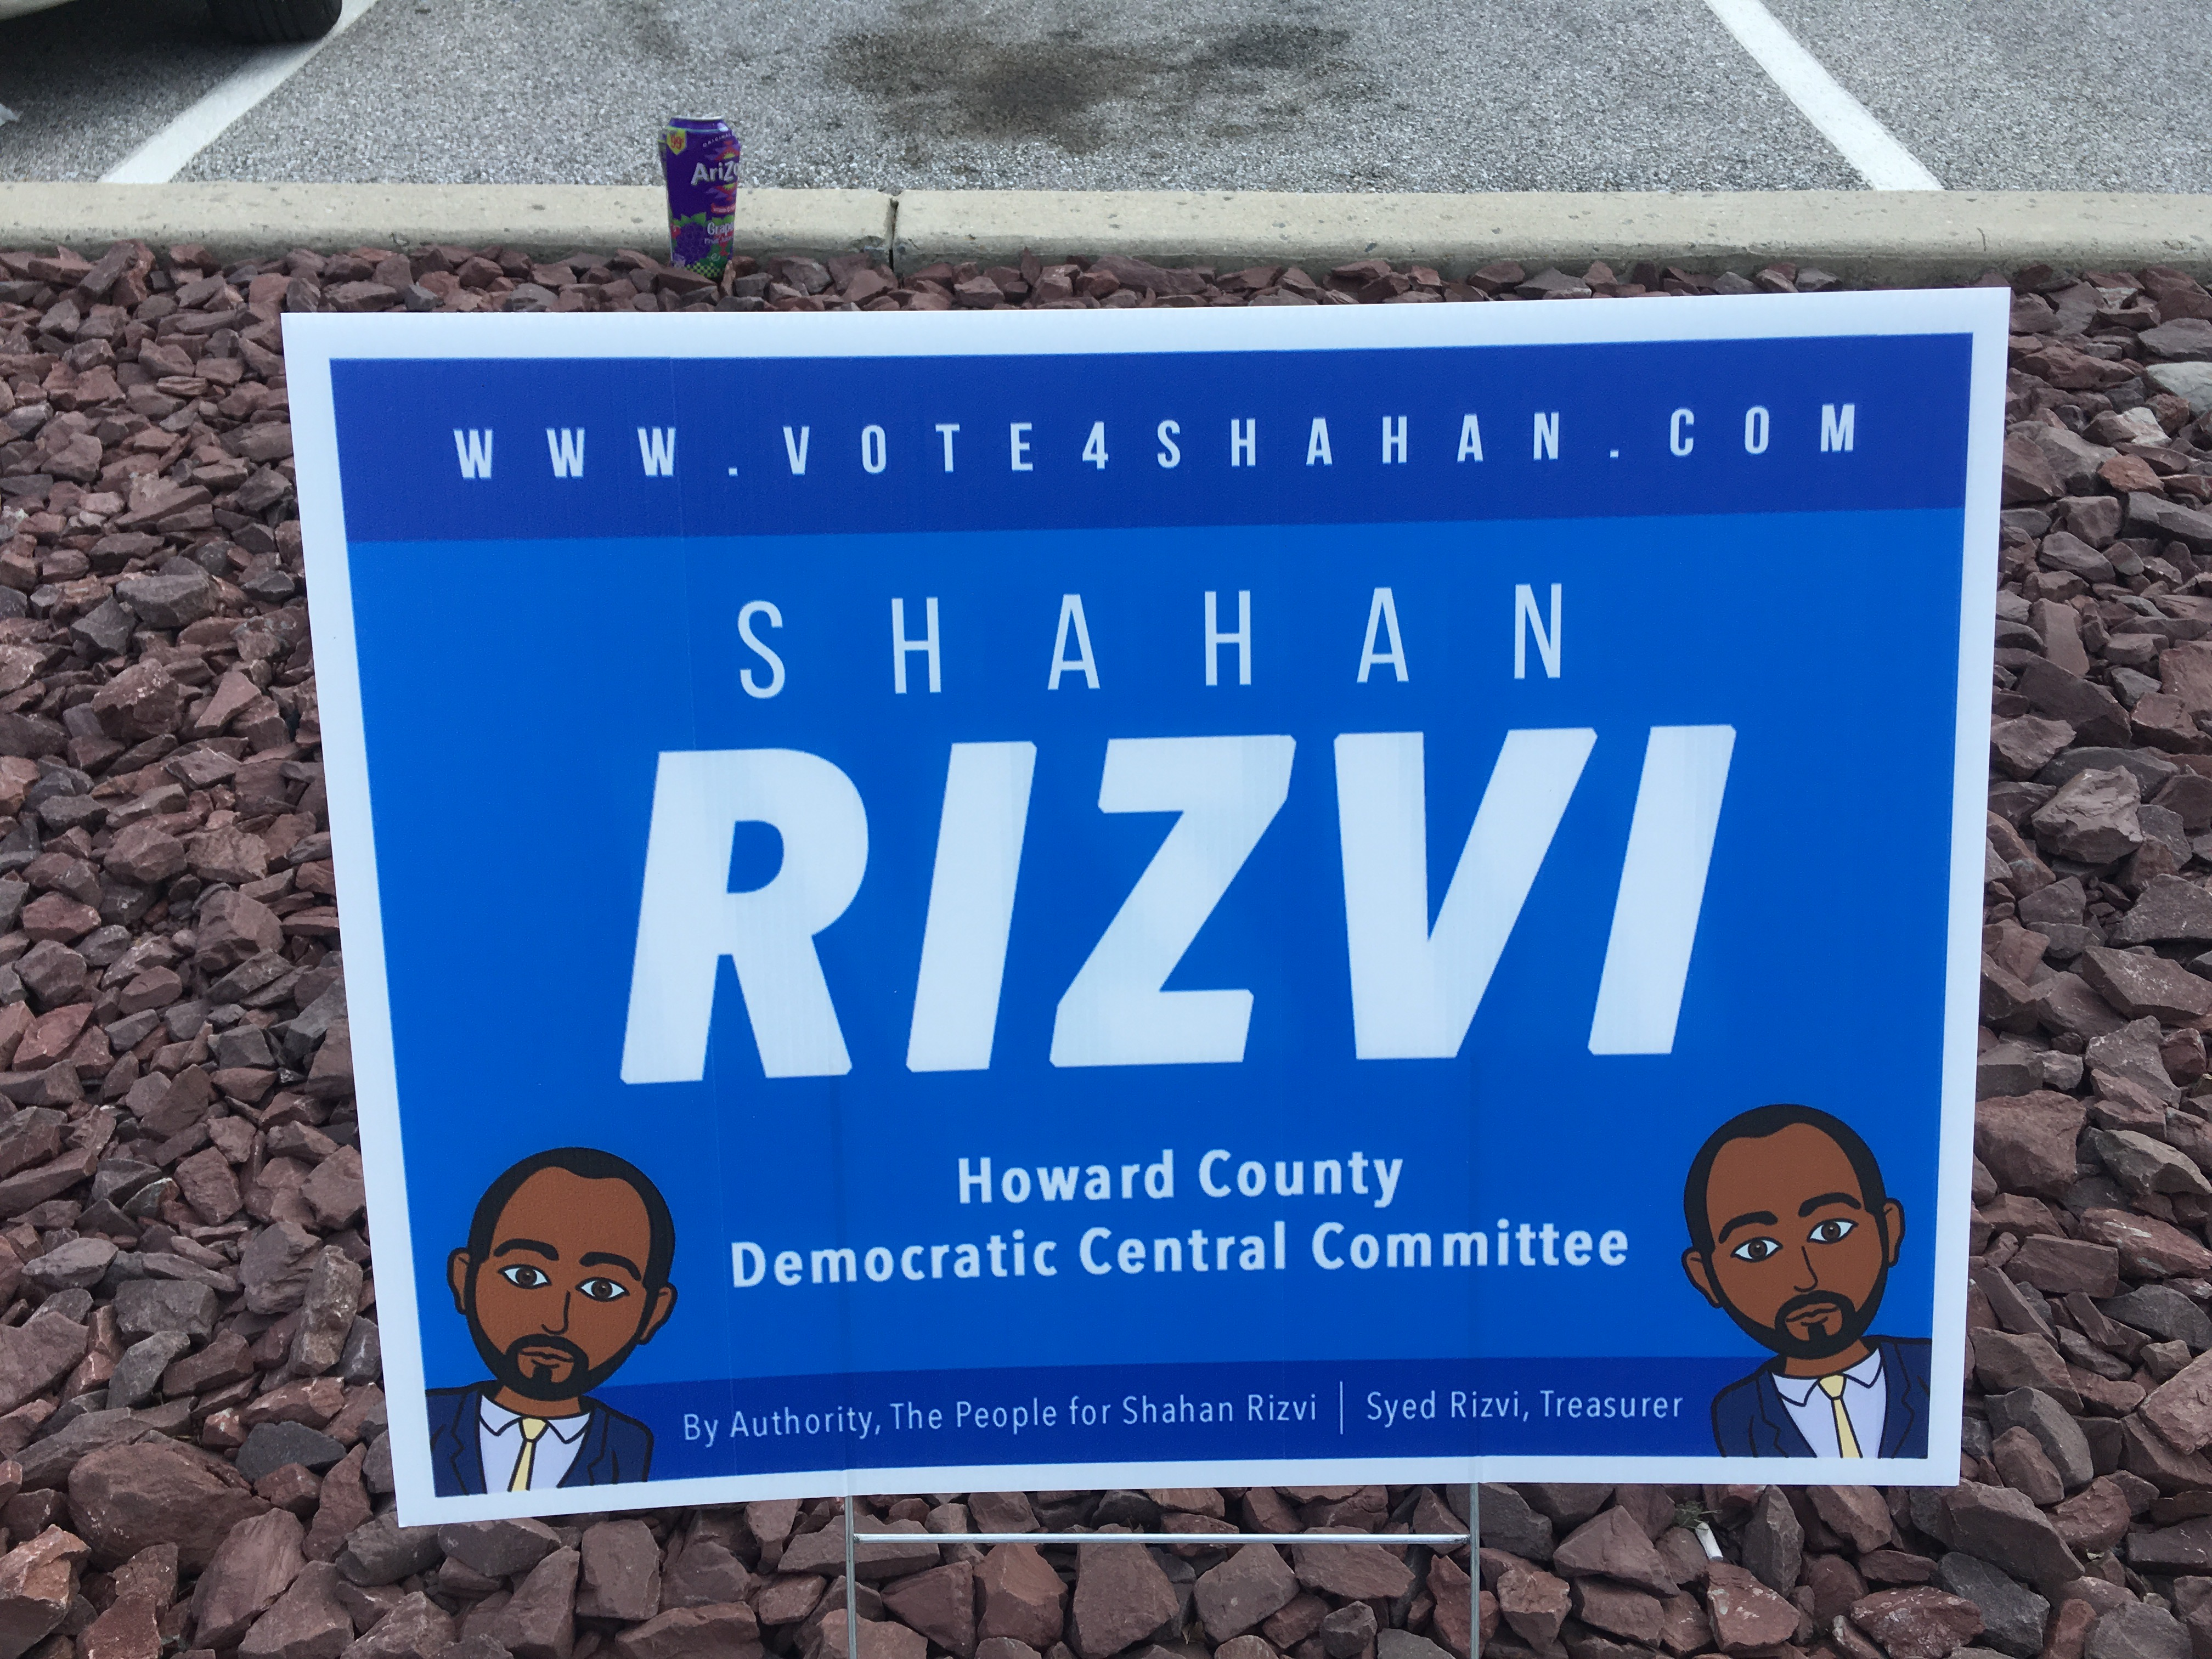 Howard County Campaign Signs 2018 Part 2 Civility And Truth